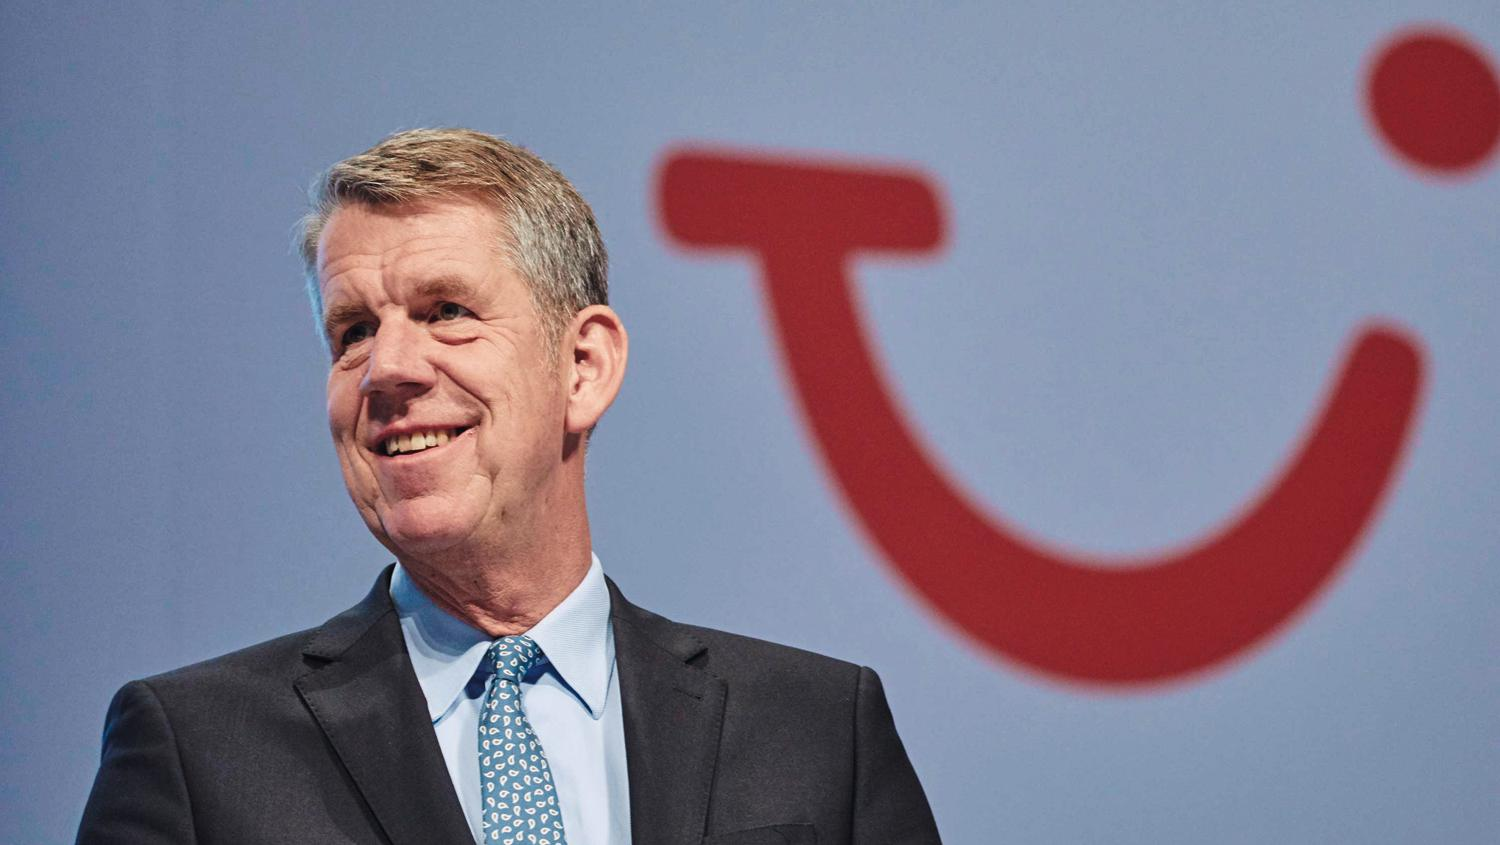 All smiles as Fritz Joussen confirms the profit forecast and eyes international growth